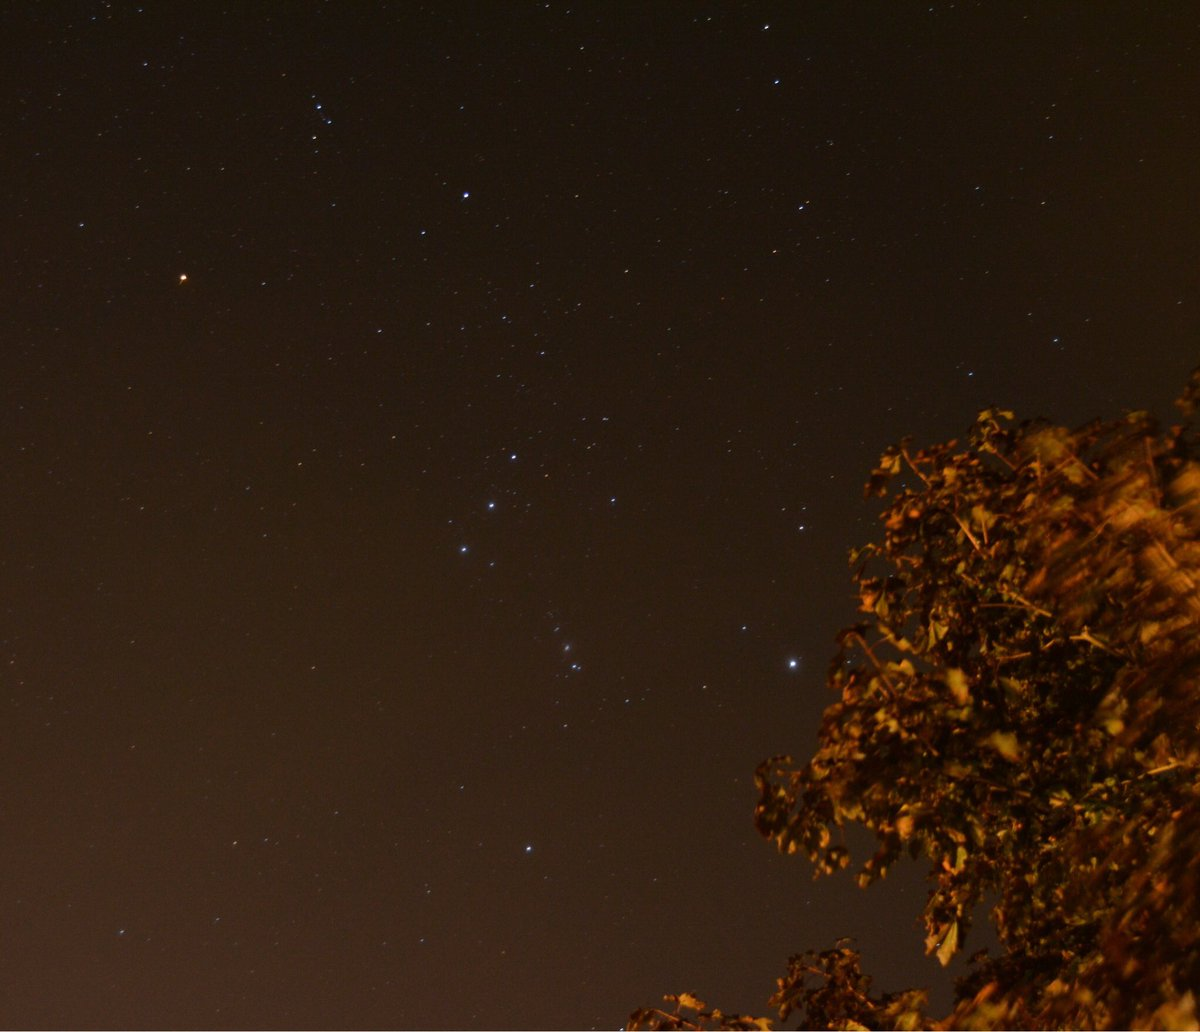 The return of Orion to the early morning sky. #PEI #astronomy #WinterIsComing<br>http://pic.twitter.com/phjA2SS5Hm